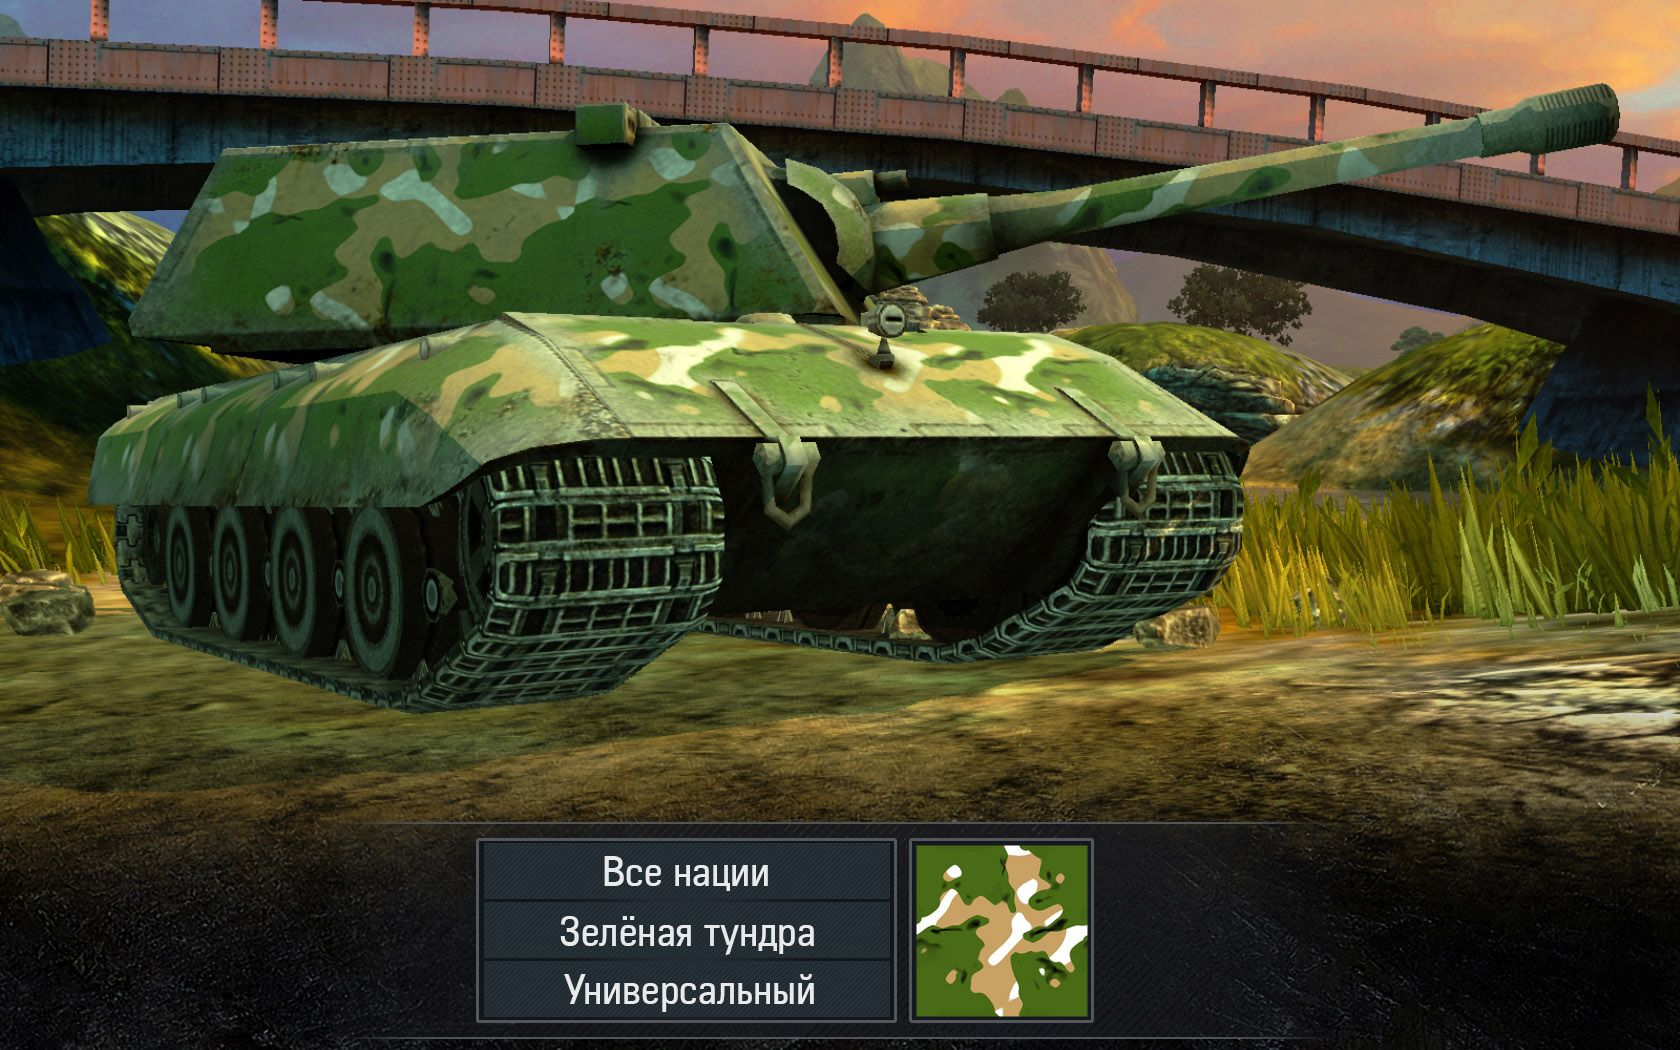 World of Tanks Blitz 2 5 camouflage pattern pictures | MMOWG net